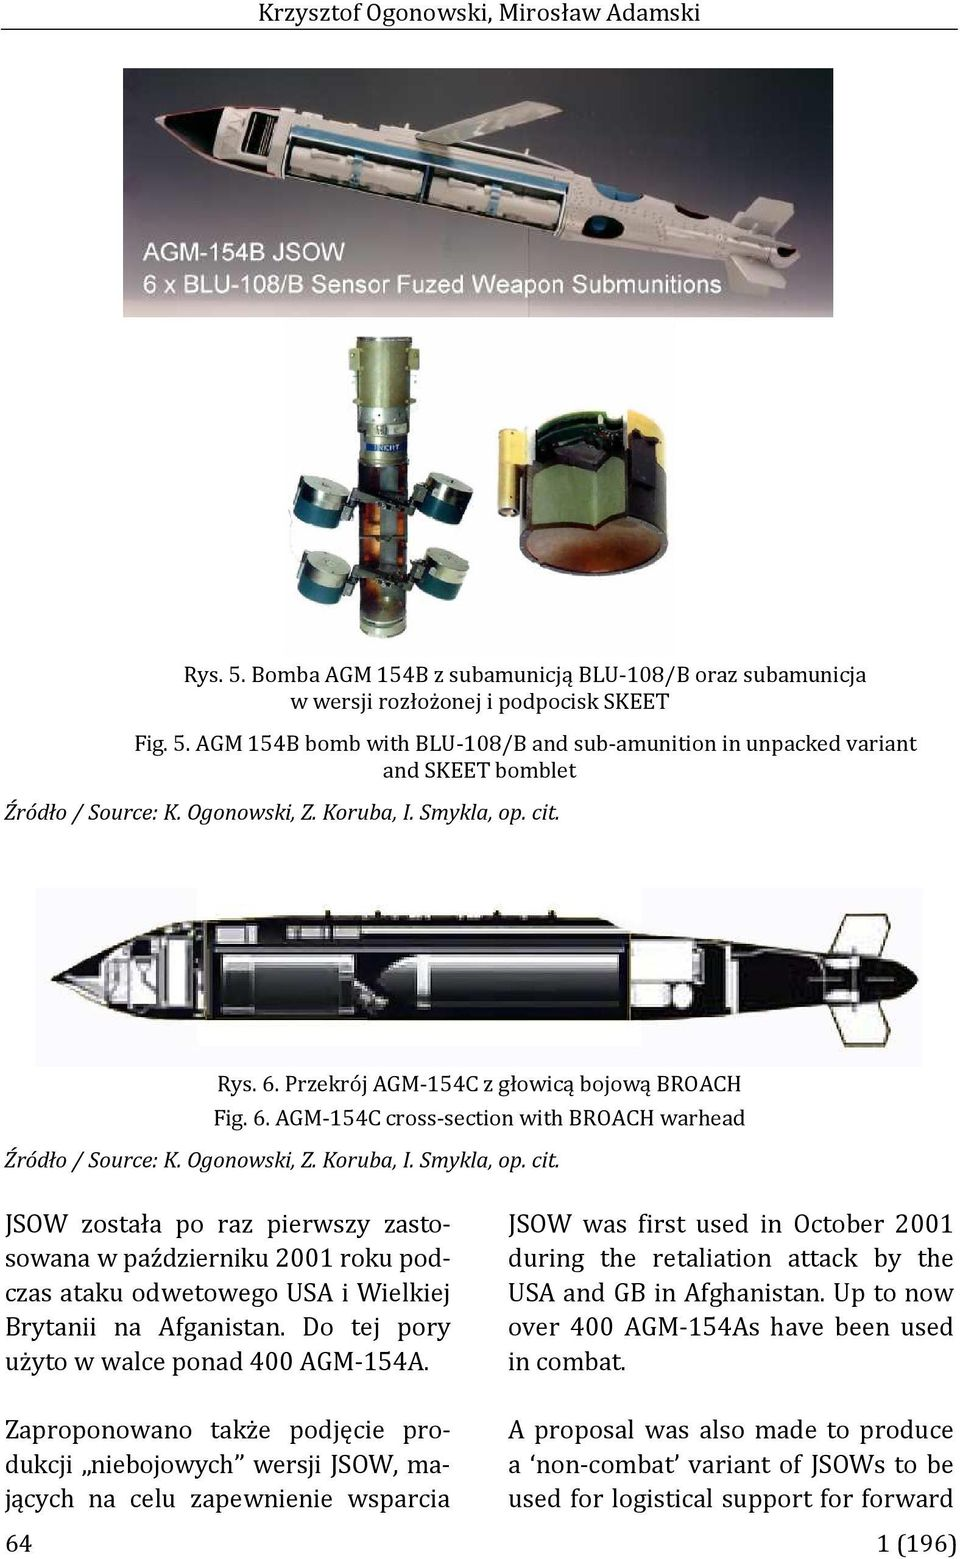 Do tej pory użyto w wale ponad 400 AGM-154A. JSOW was first used in Otober 2001 during the retaliation attak by the USA and GB in Afghanistan. Up to now over 400 AGM-154As have been used in ombat.